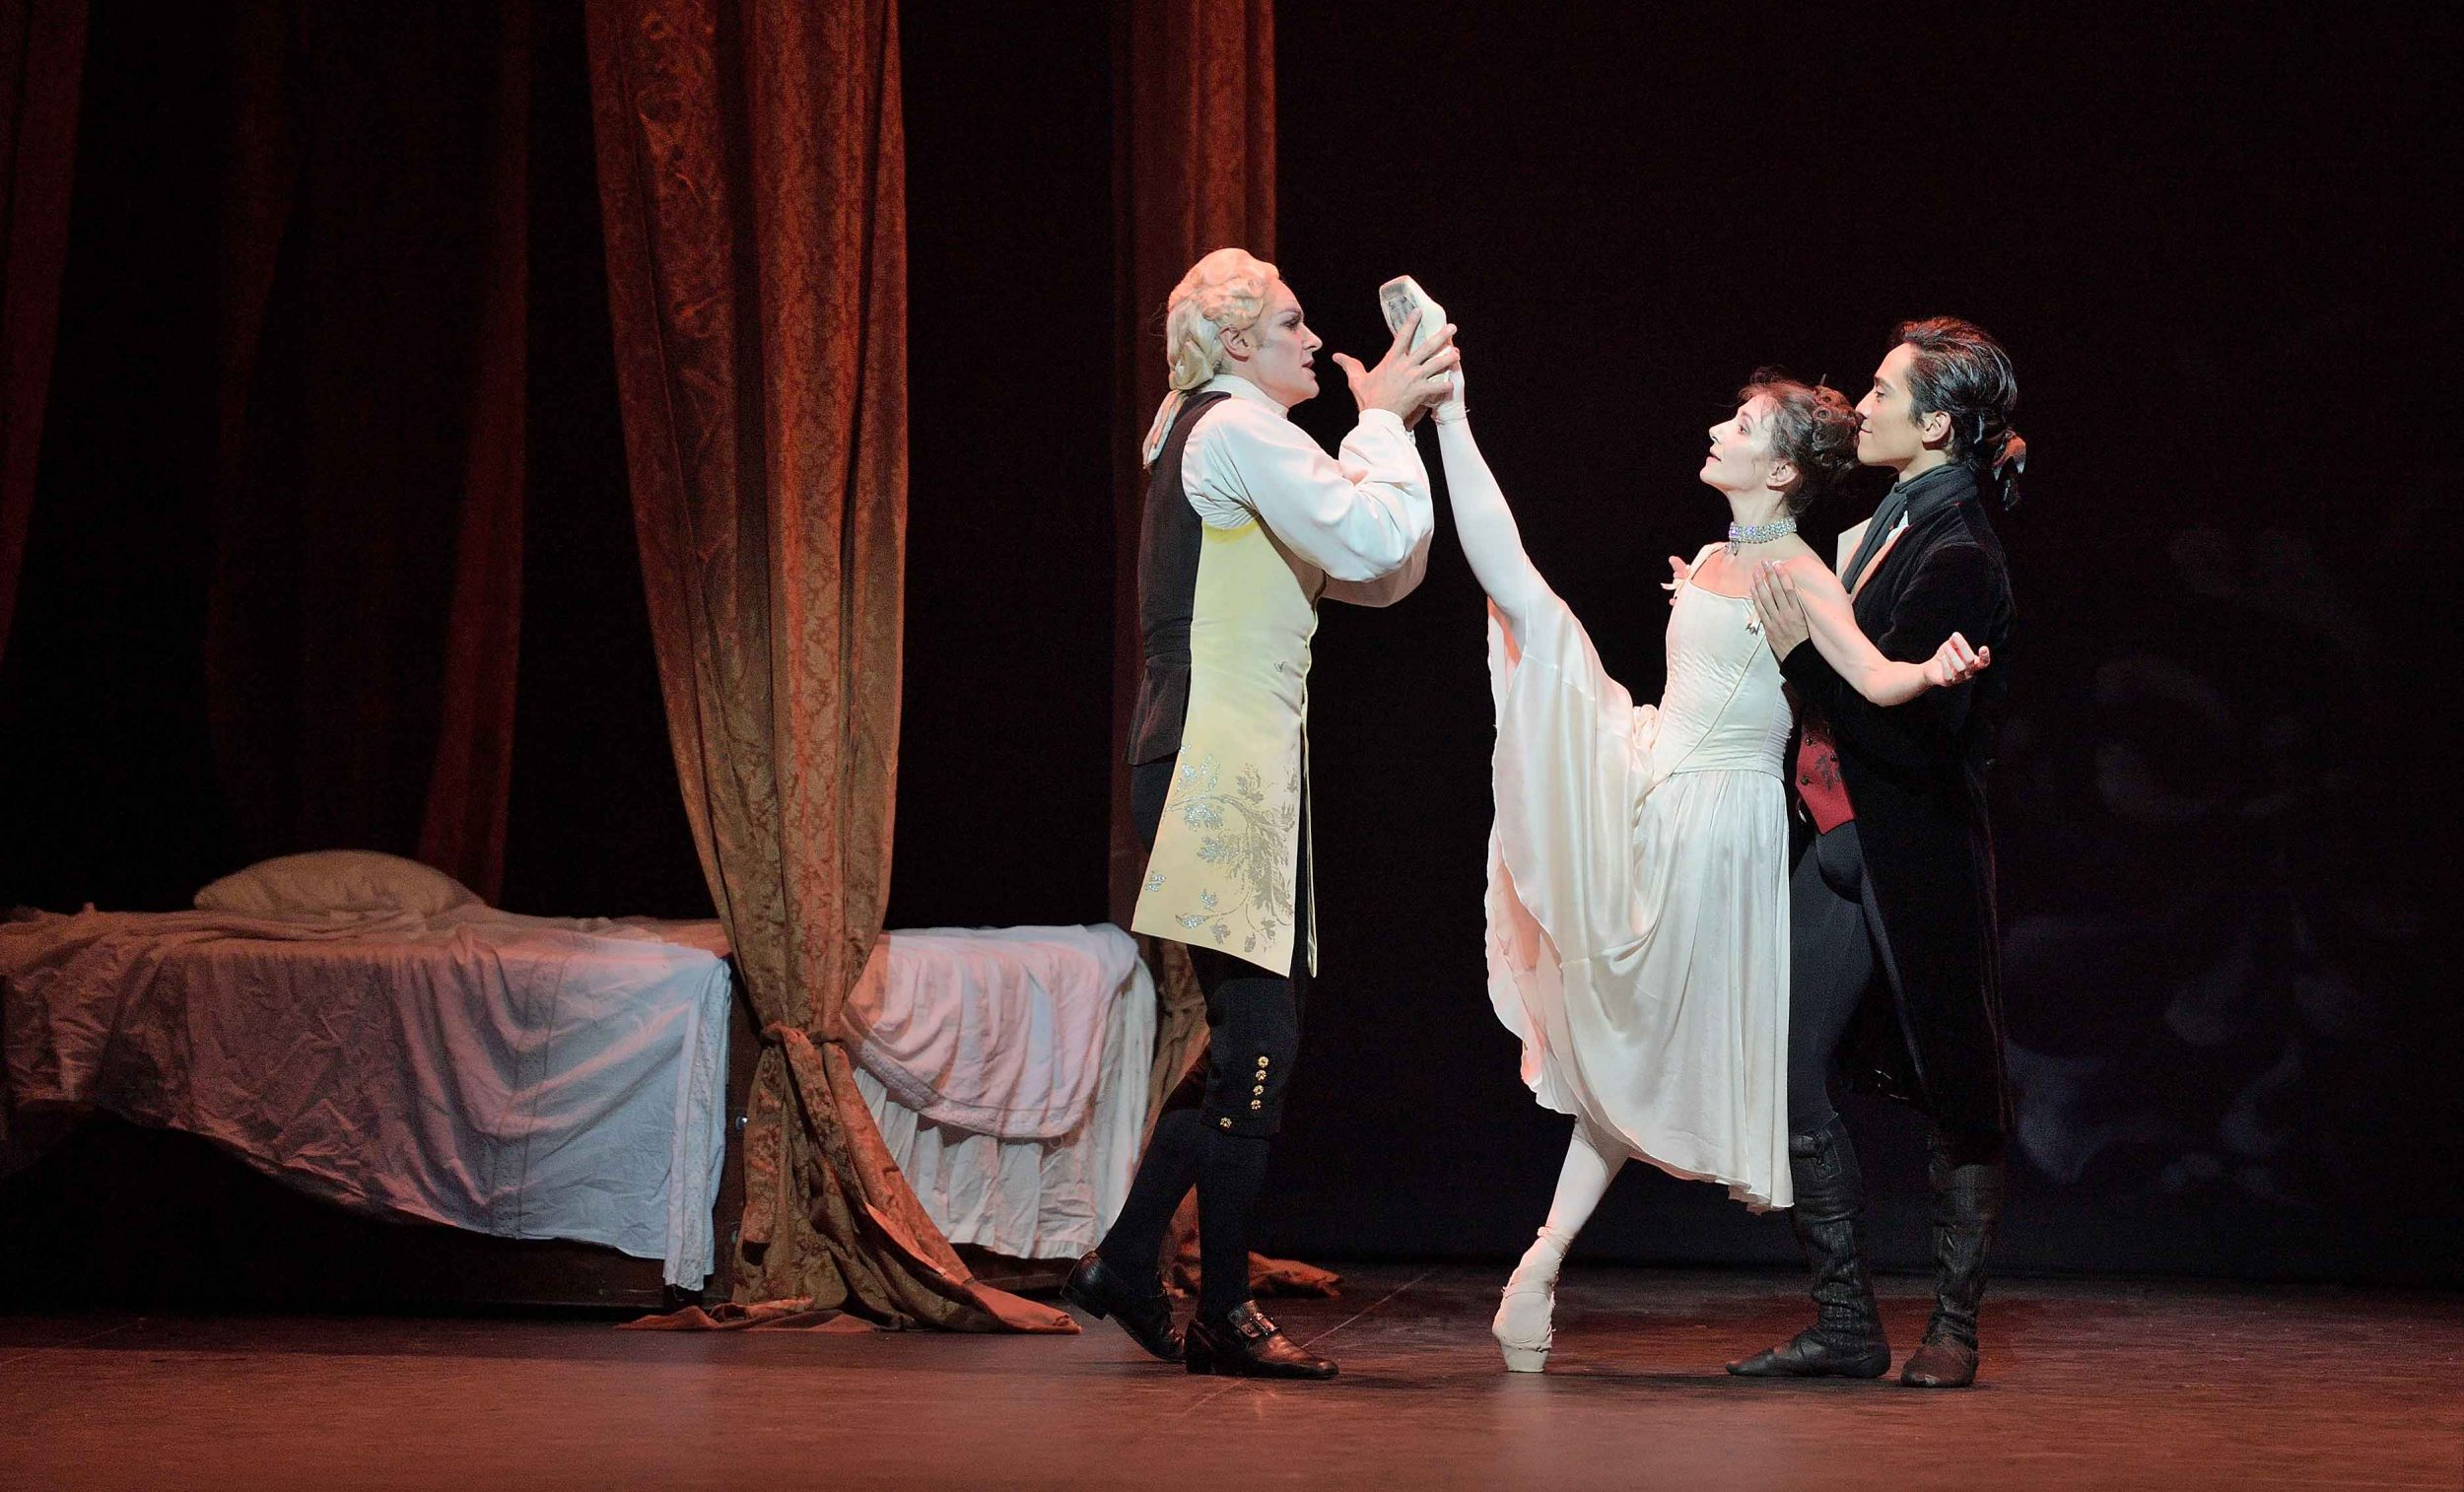 James-Streeter,-Alina-Cojocaru-and-Jeffrey-Cirio-in-Manon-(c)-Laurent-Liotardo